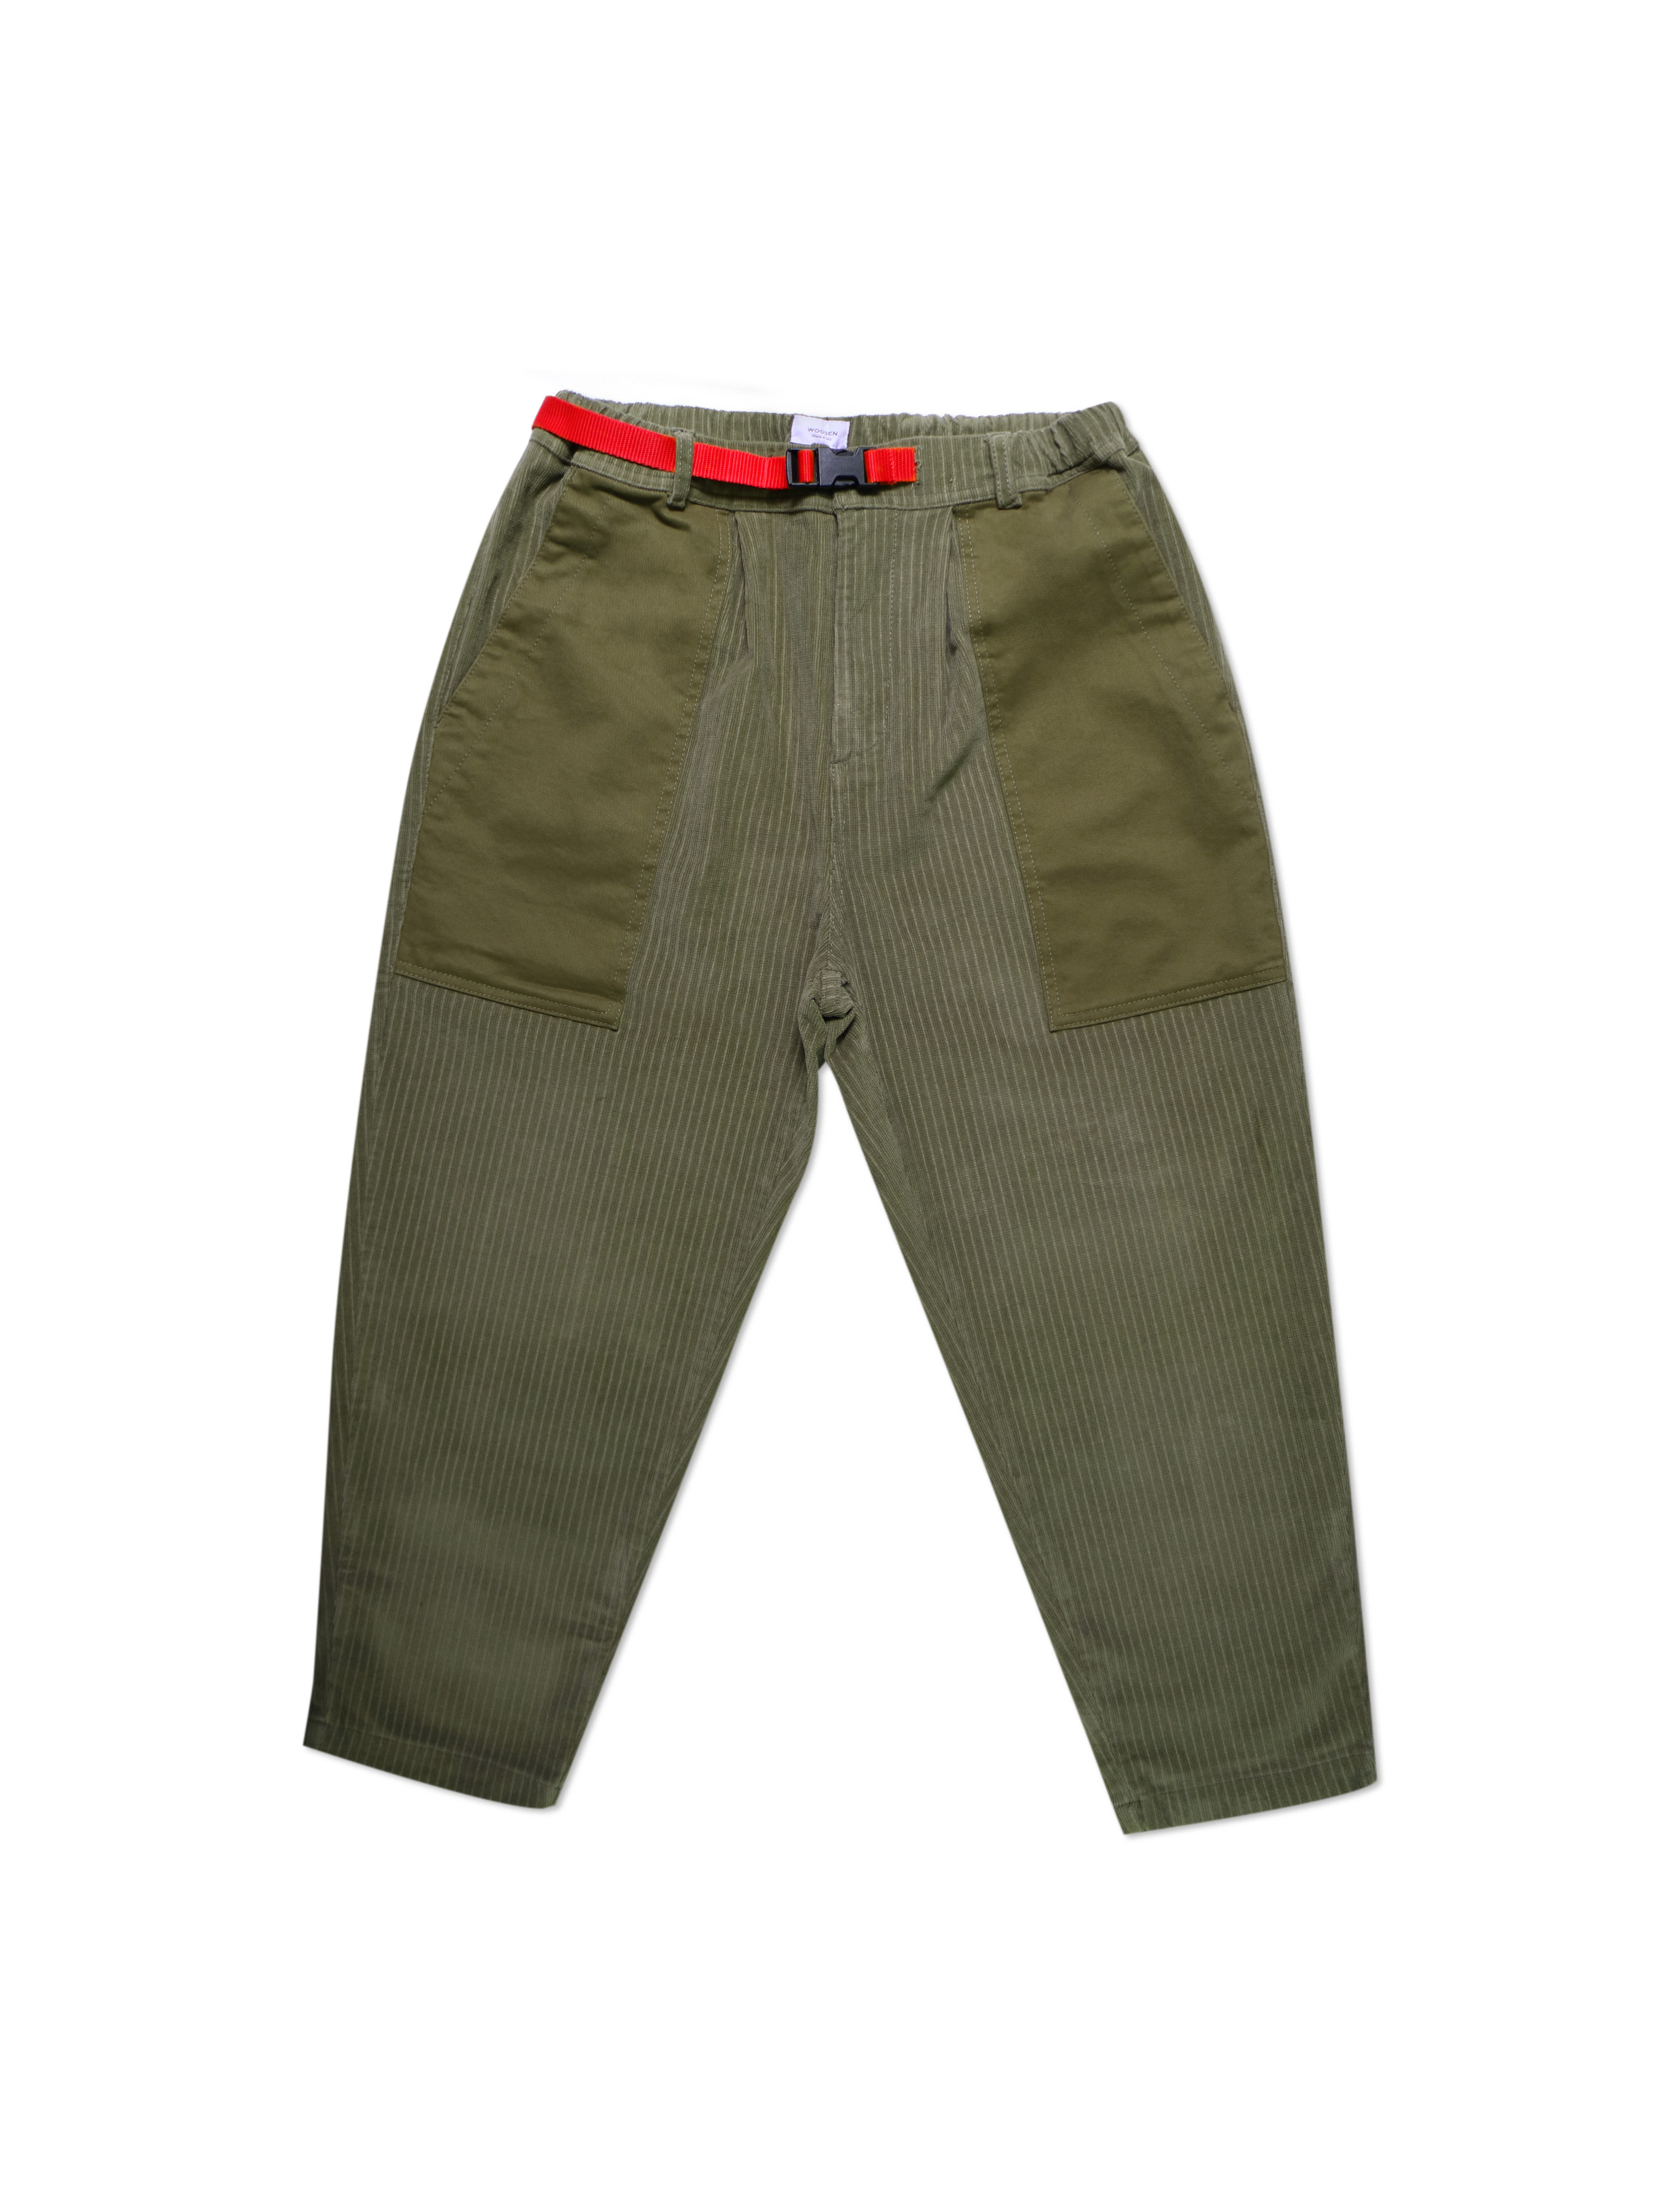 Pantalone Fatigue Camel | Wooden Store